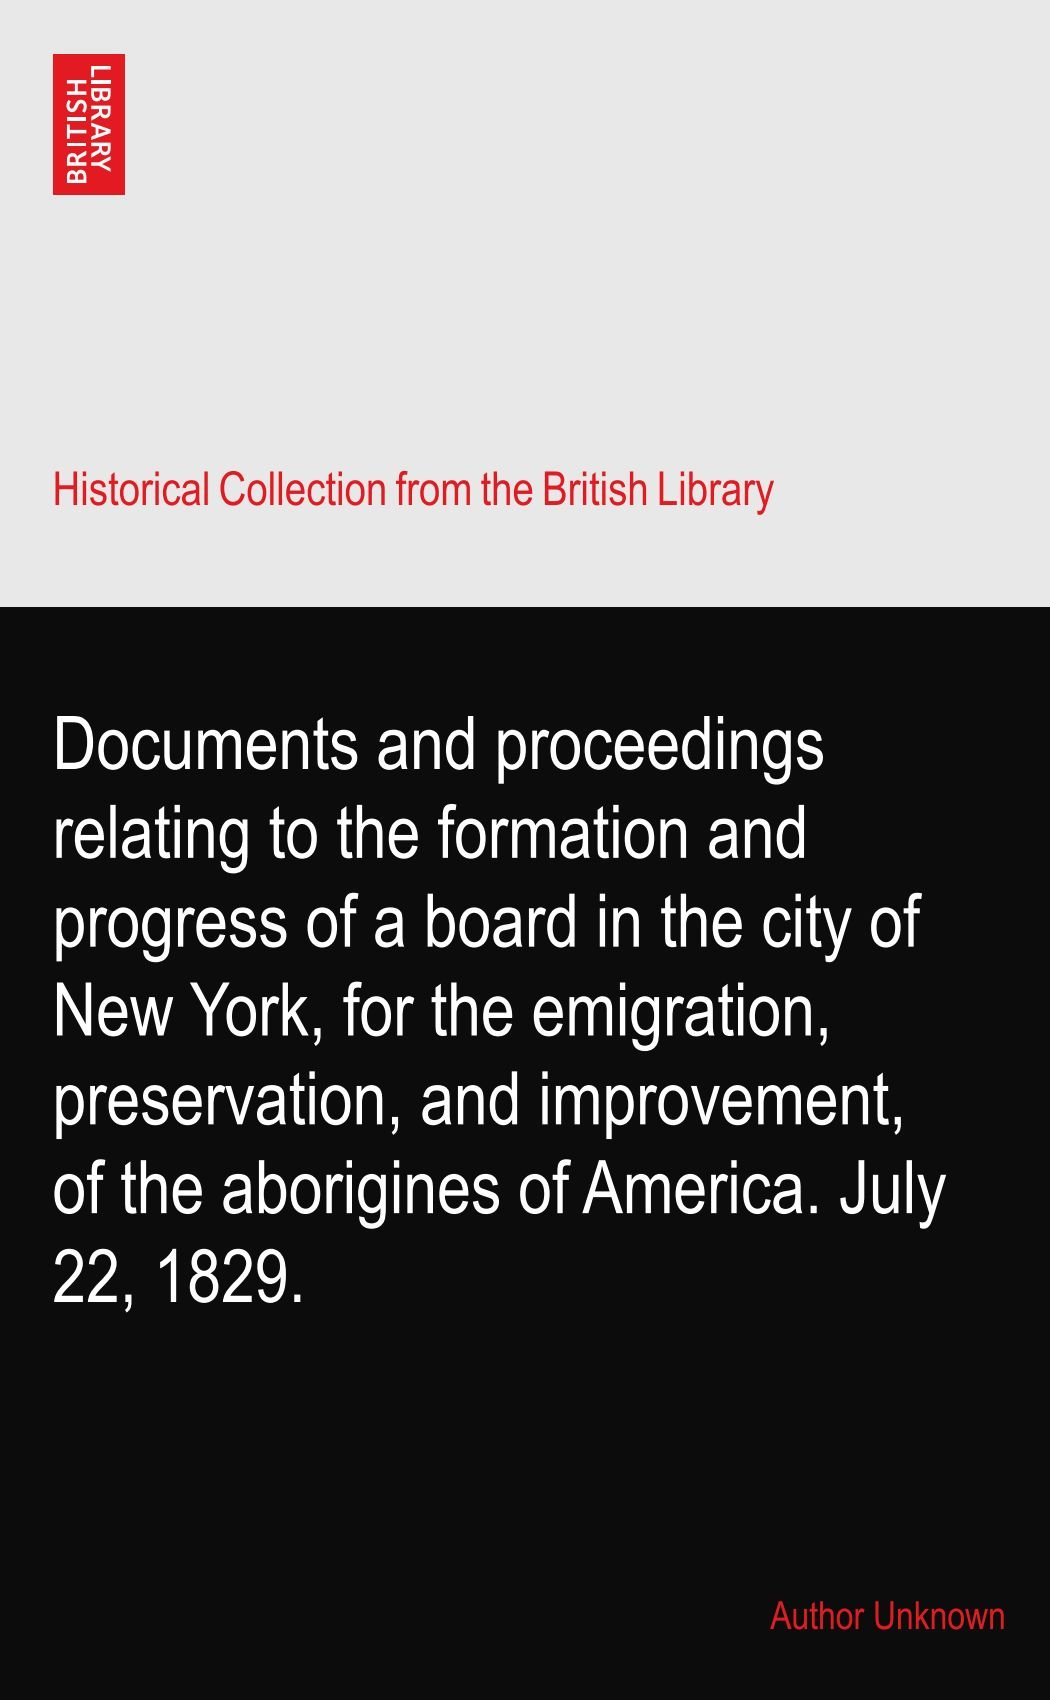 Download Documents and proceedings relating to the formation and progress of a board in the city of New York, for the emigration, preservation, and improvement, of the aborigines of America. July 22, 1829. ebook